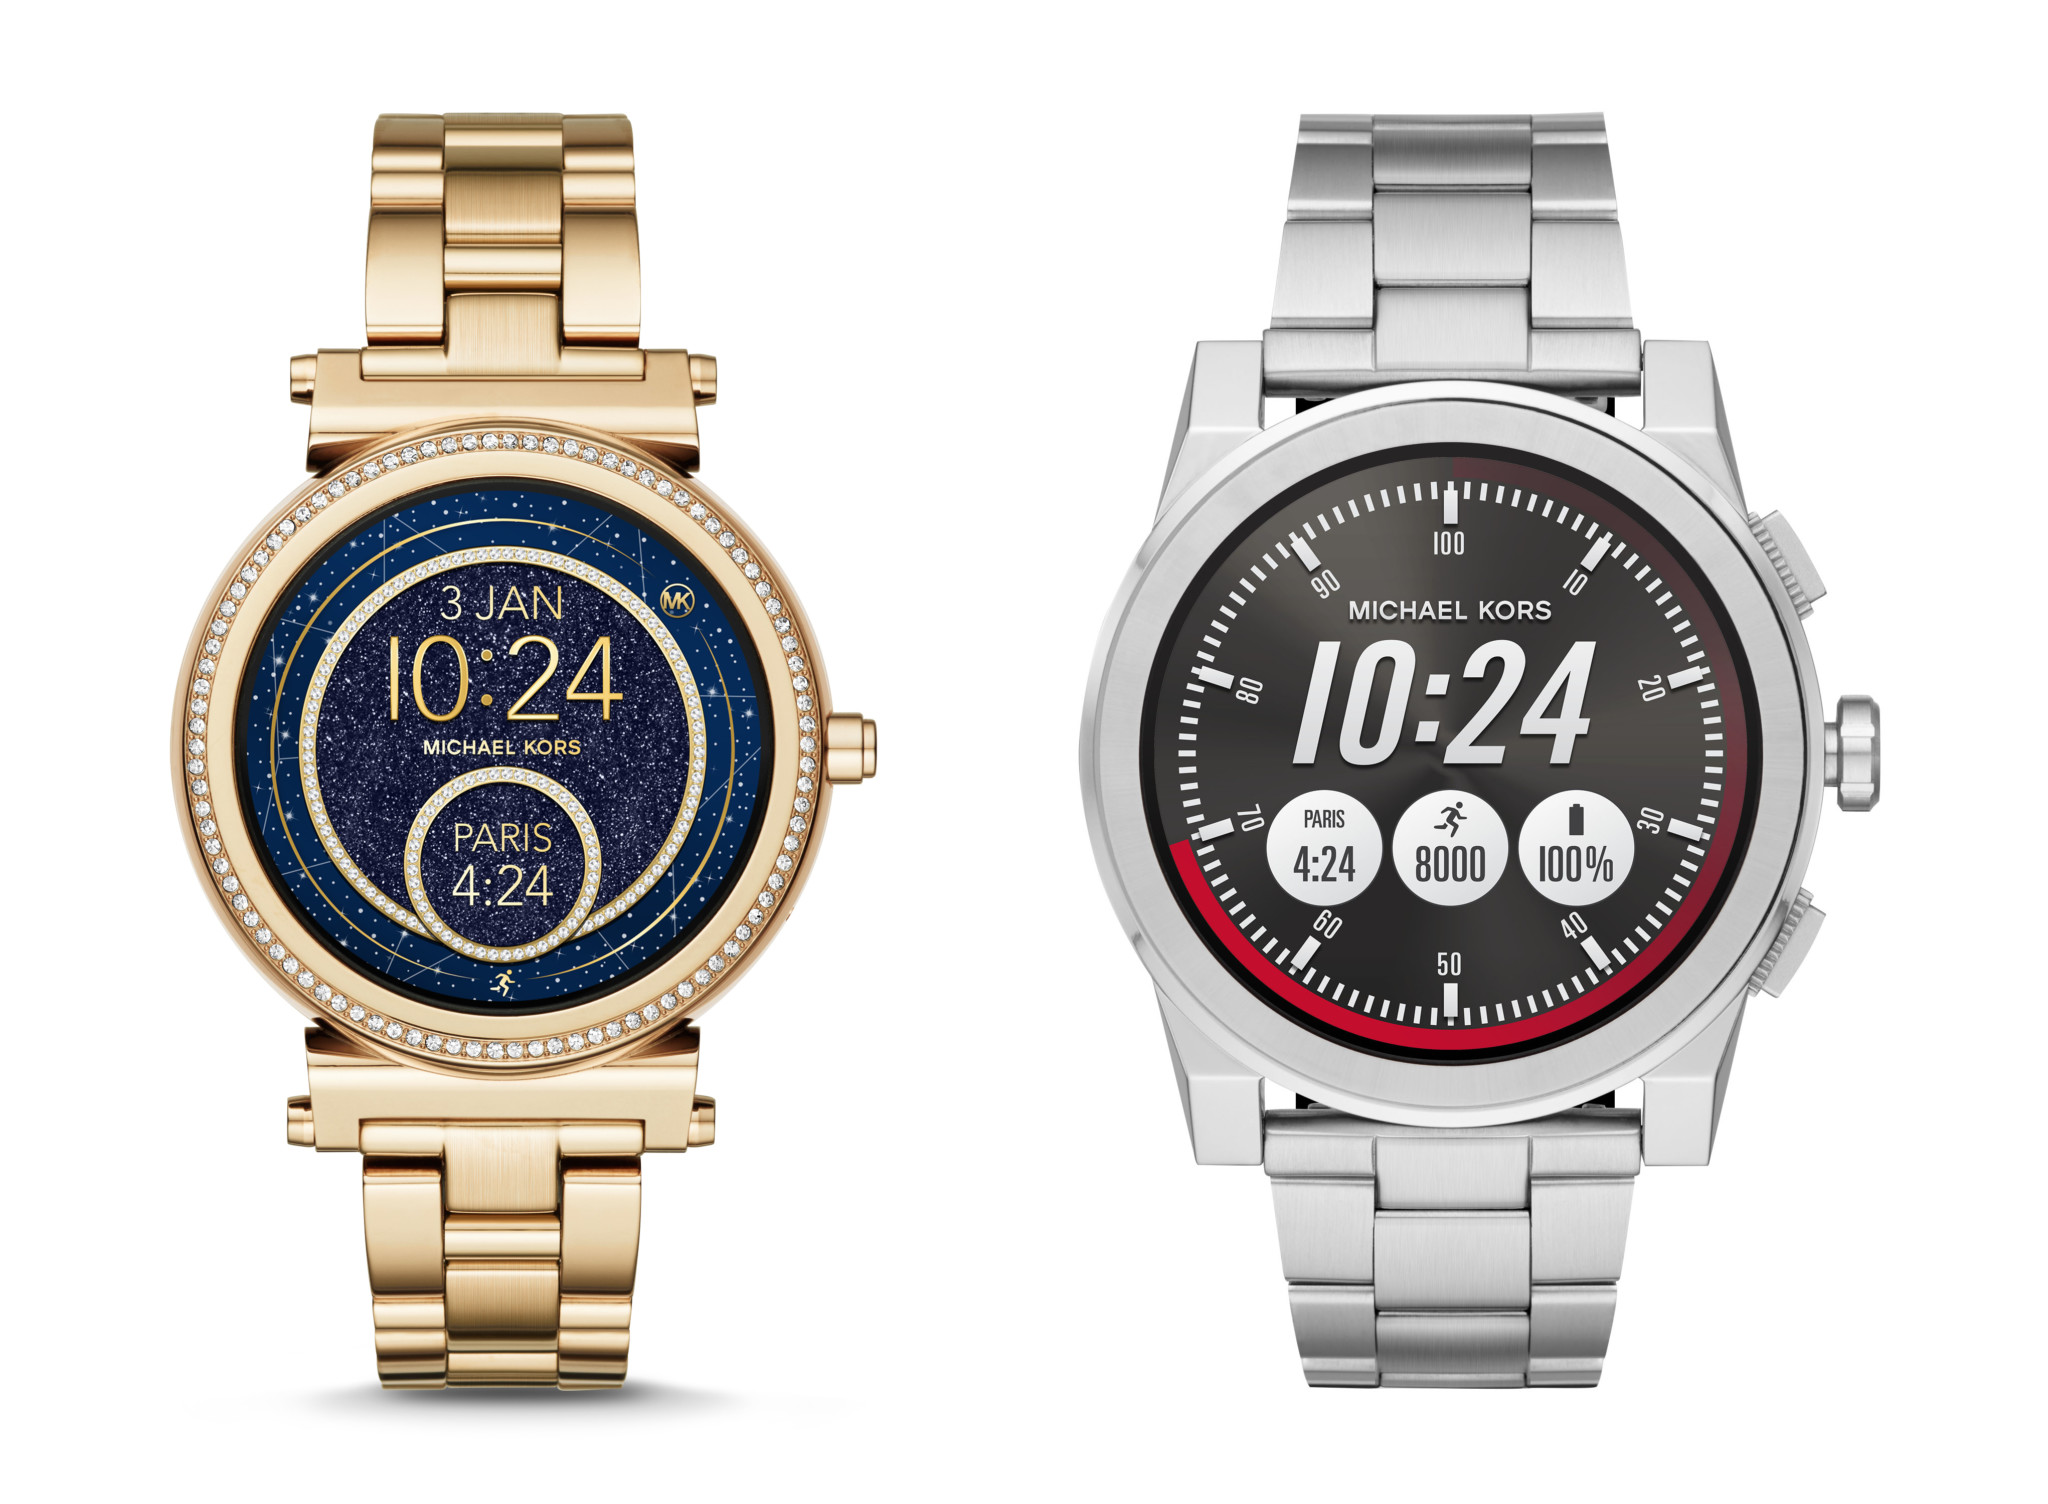 b3039d59f2322 Fossil Group doubles number of doors for its smartwatches and connected  hybrids